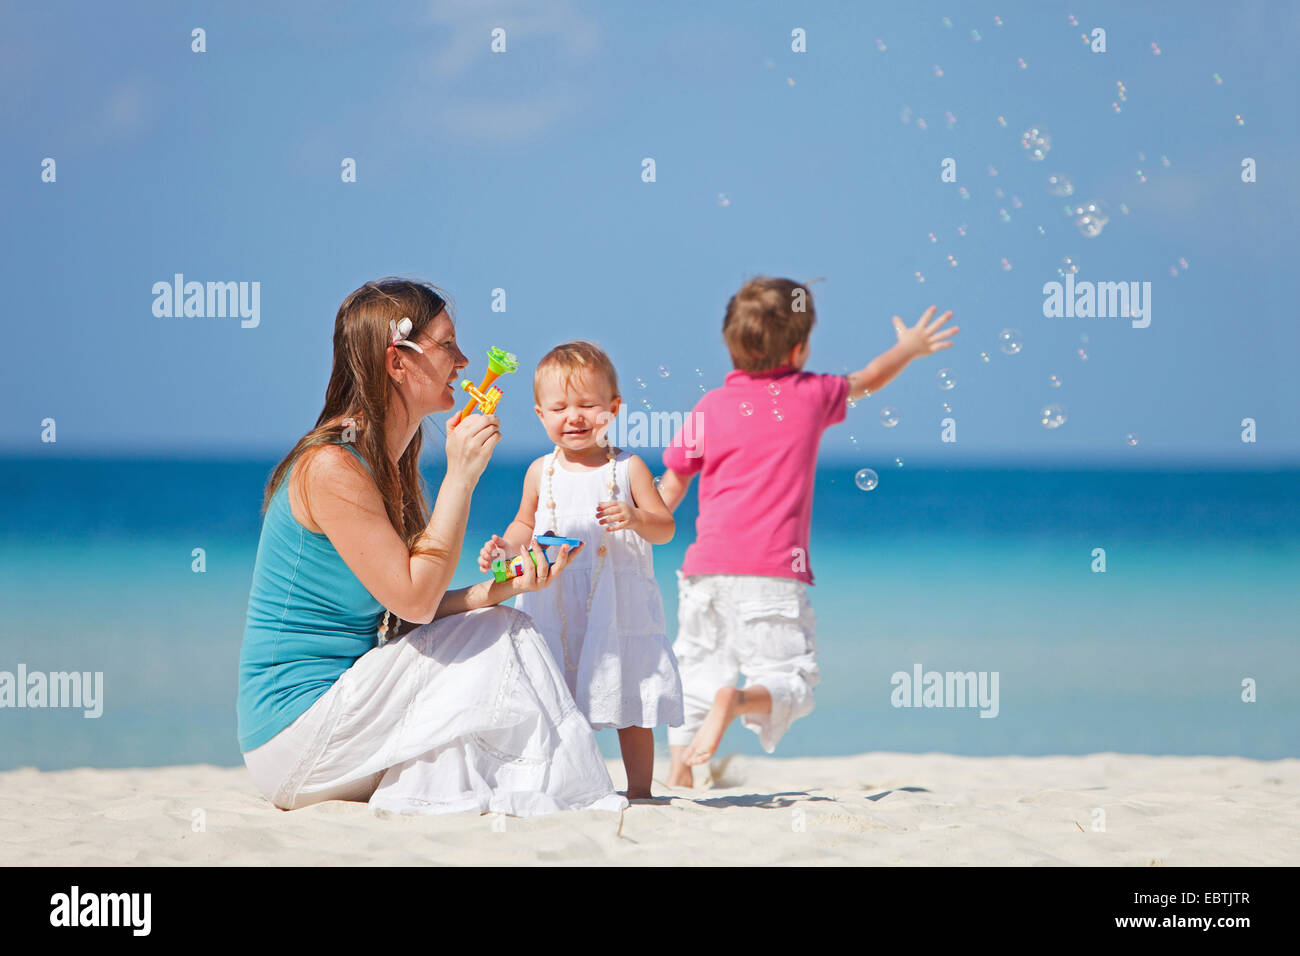 mother sitting with her two children on the beach and blowing bubbles Stock Photo